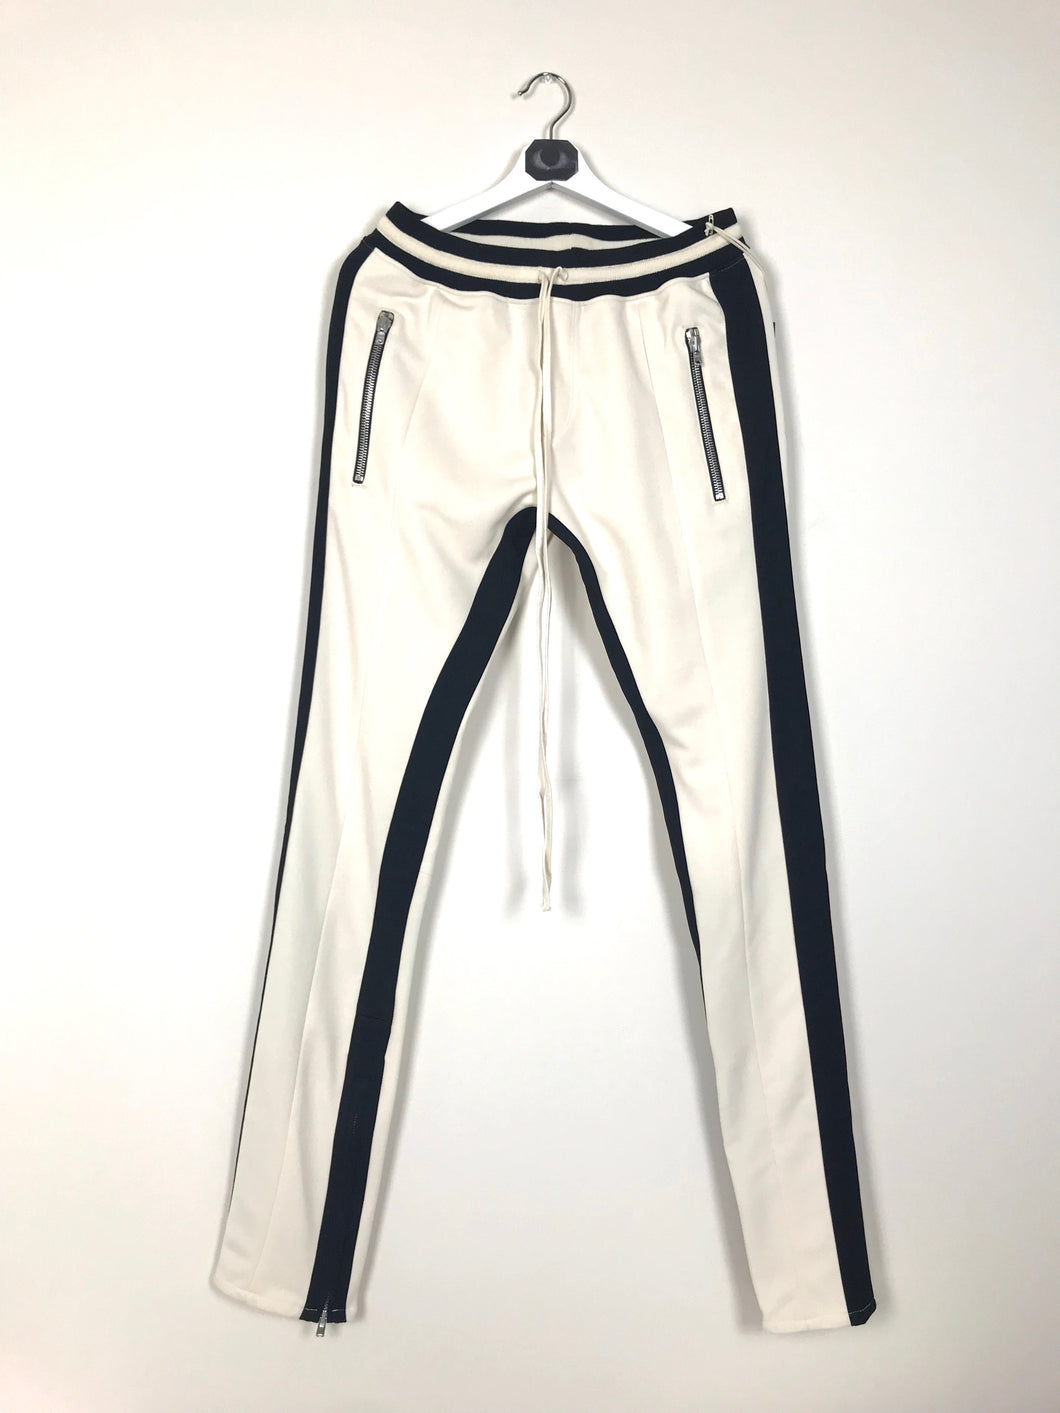 Fear of God 5th Collection SSENSE Exclusive Track pants (Retail)